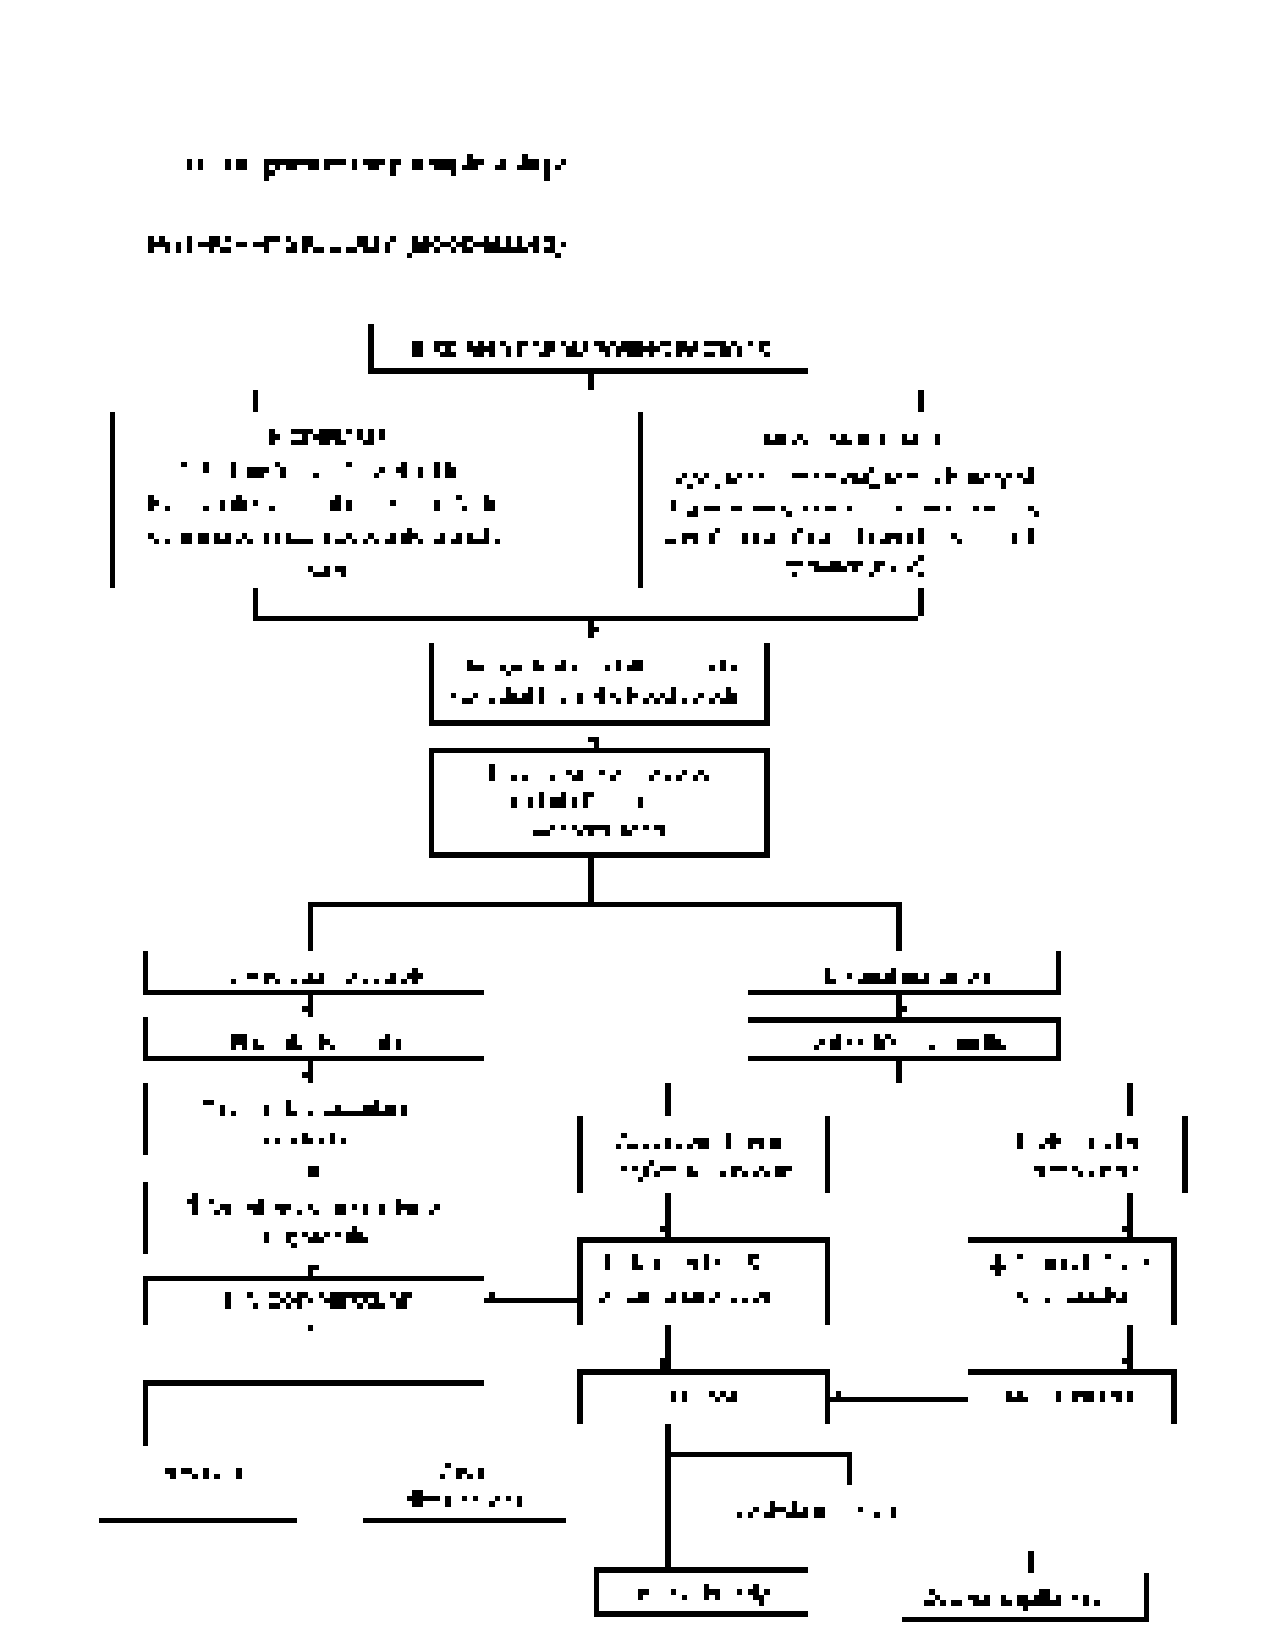 an analysis of pathophysiology case study preeclampsia View notes - case study analysis paper from comm 215 at university of phoenix university of phoenix material case study analysis paper prepare a 1,400 to 1,750-word case study analysis paper based.